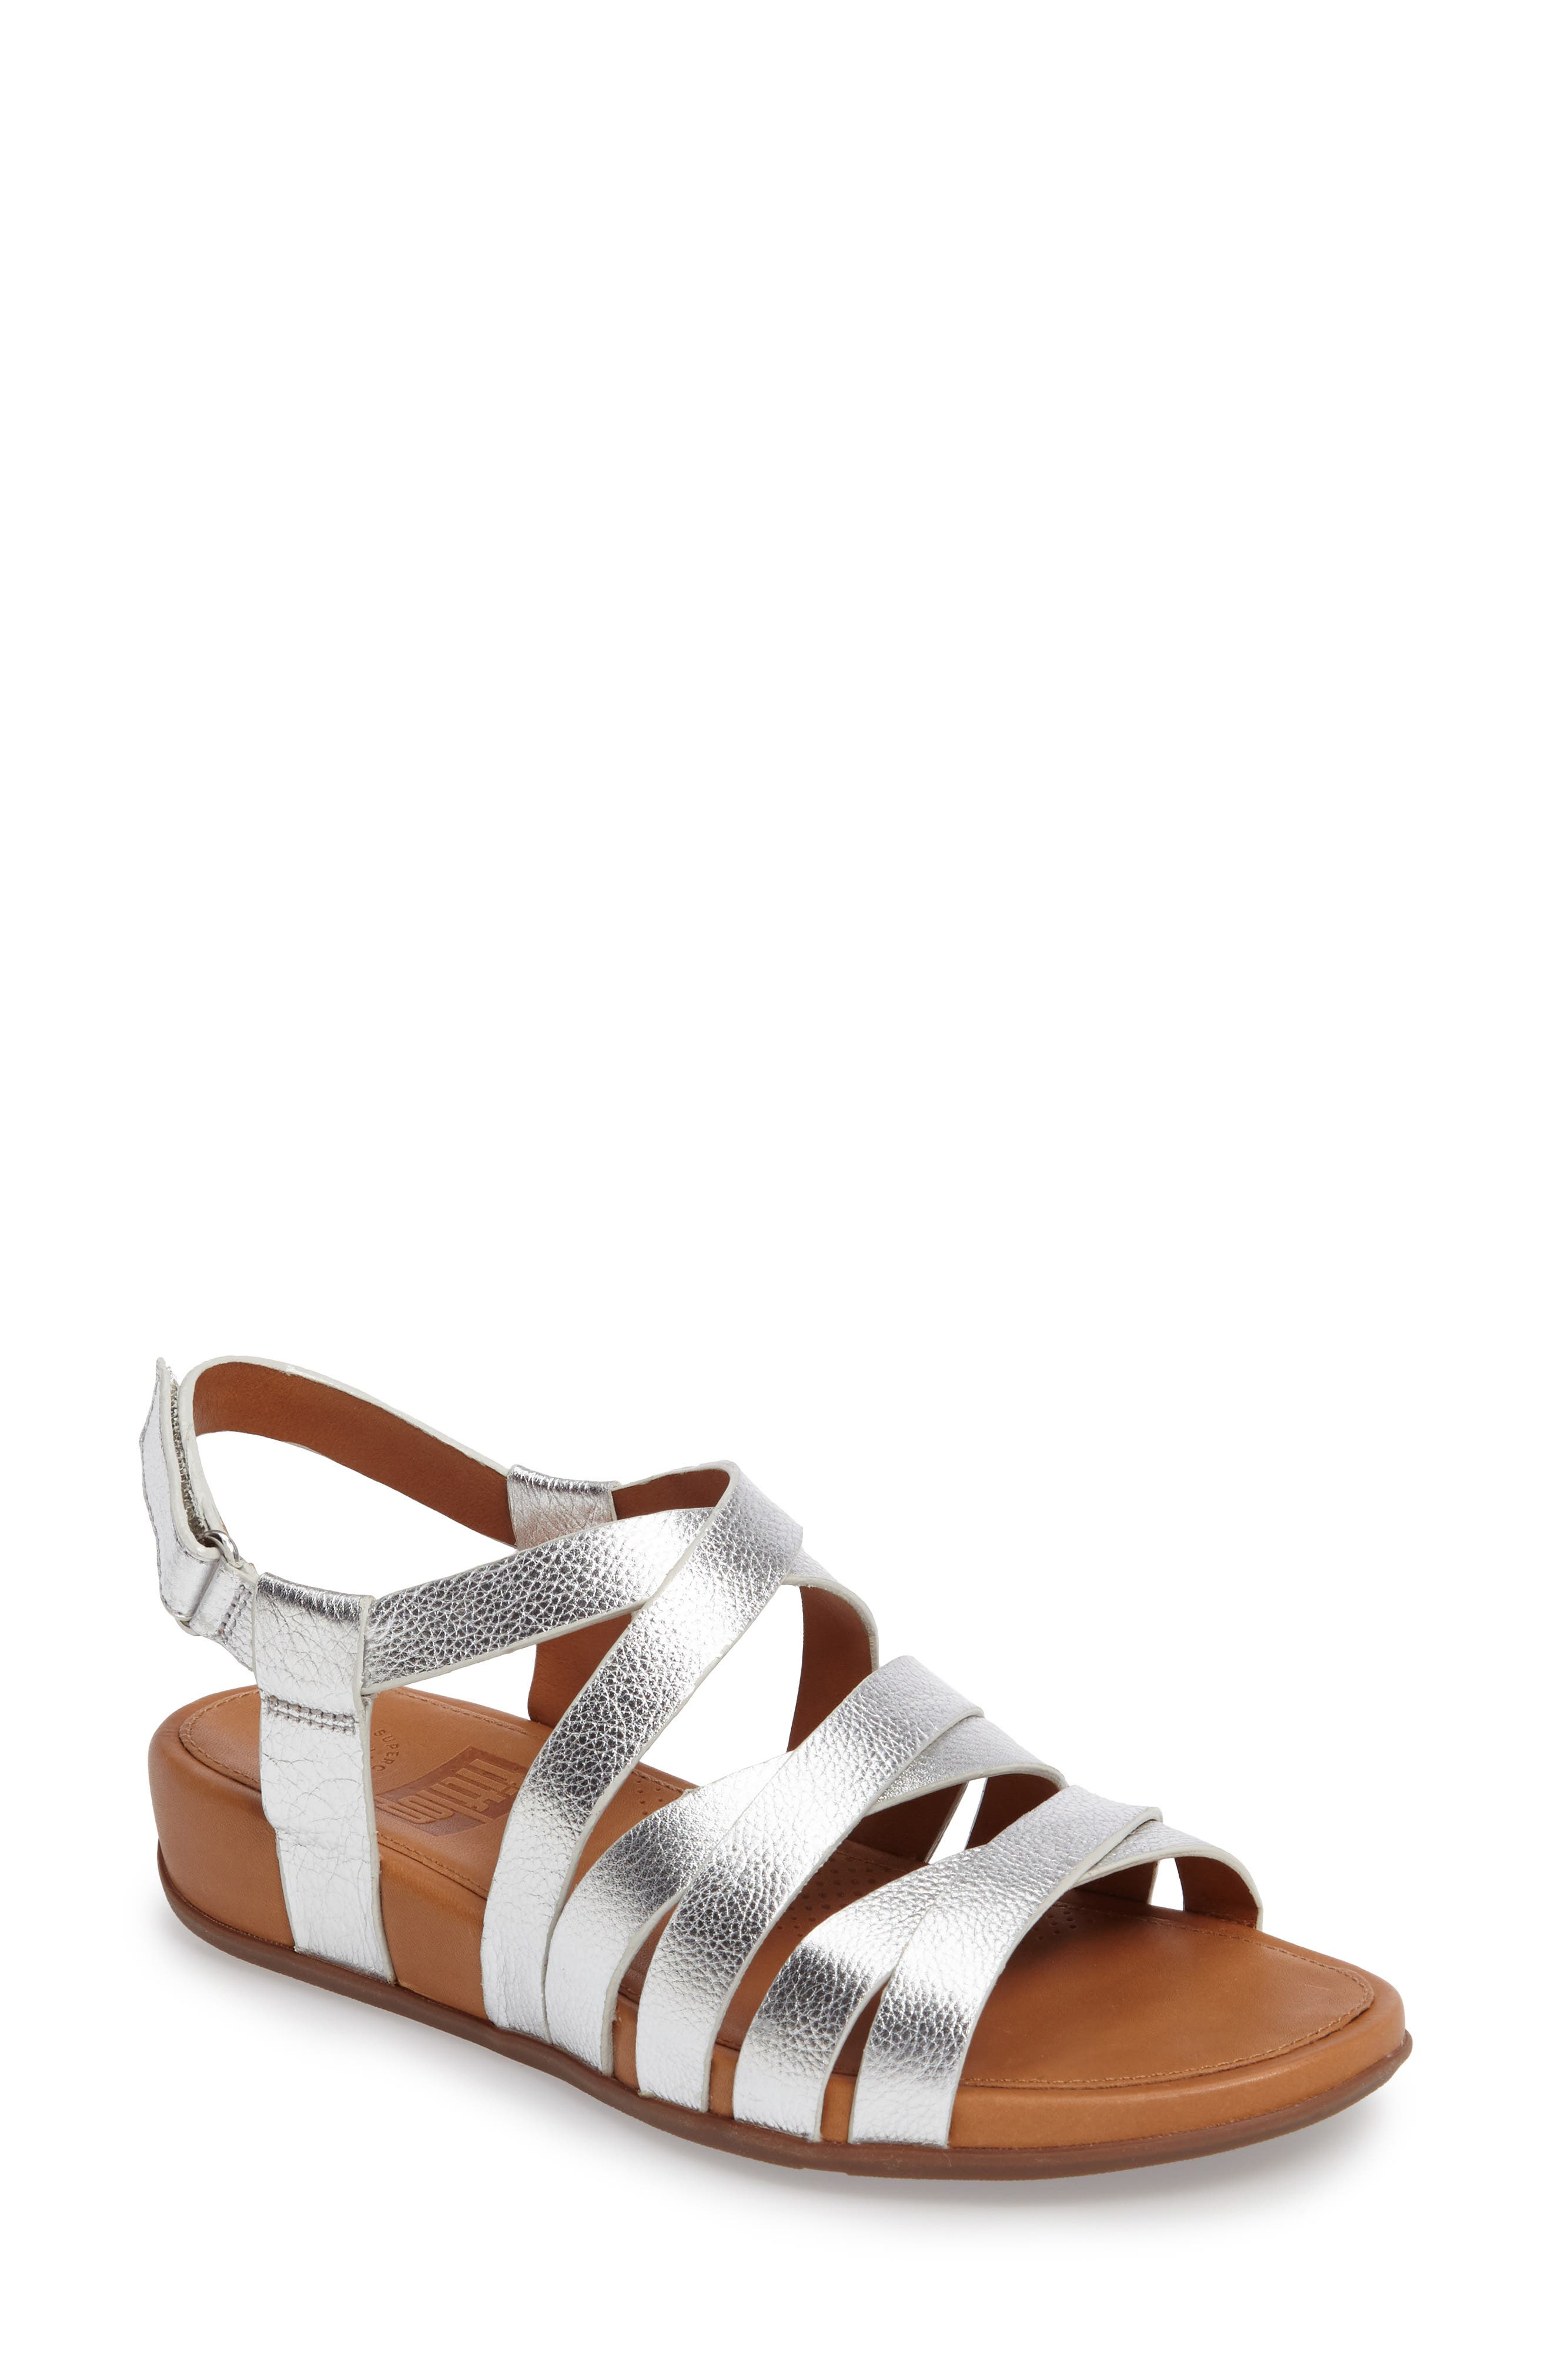 FITFLOP Lumy Gladiator Sandal